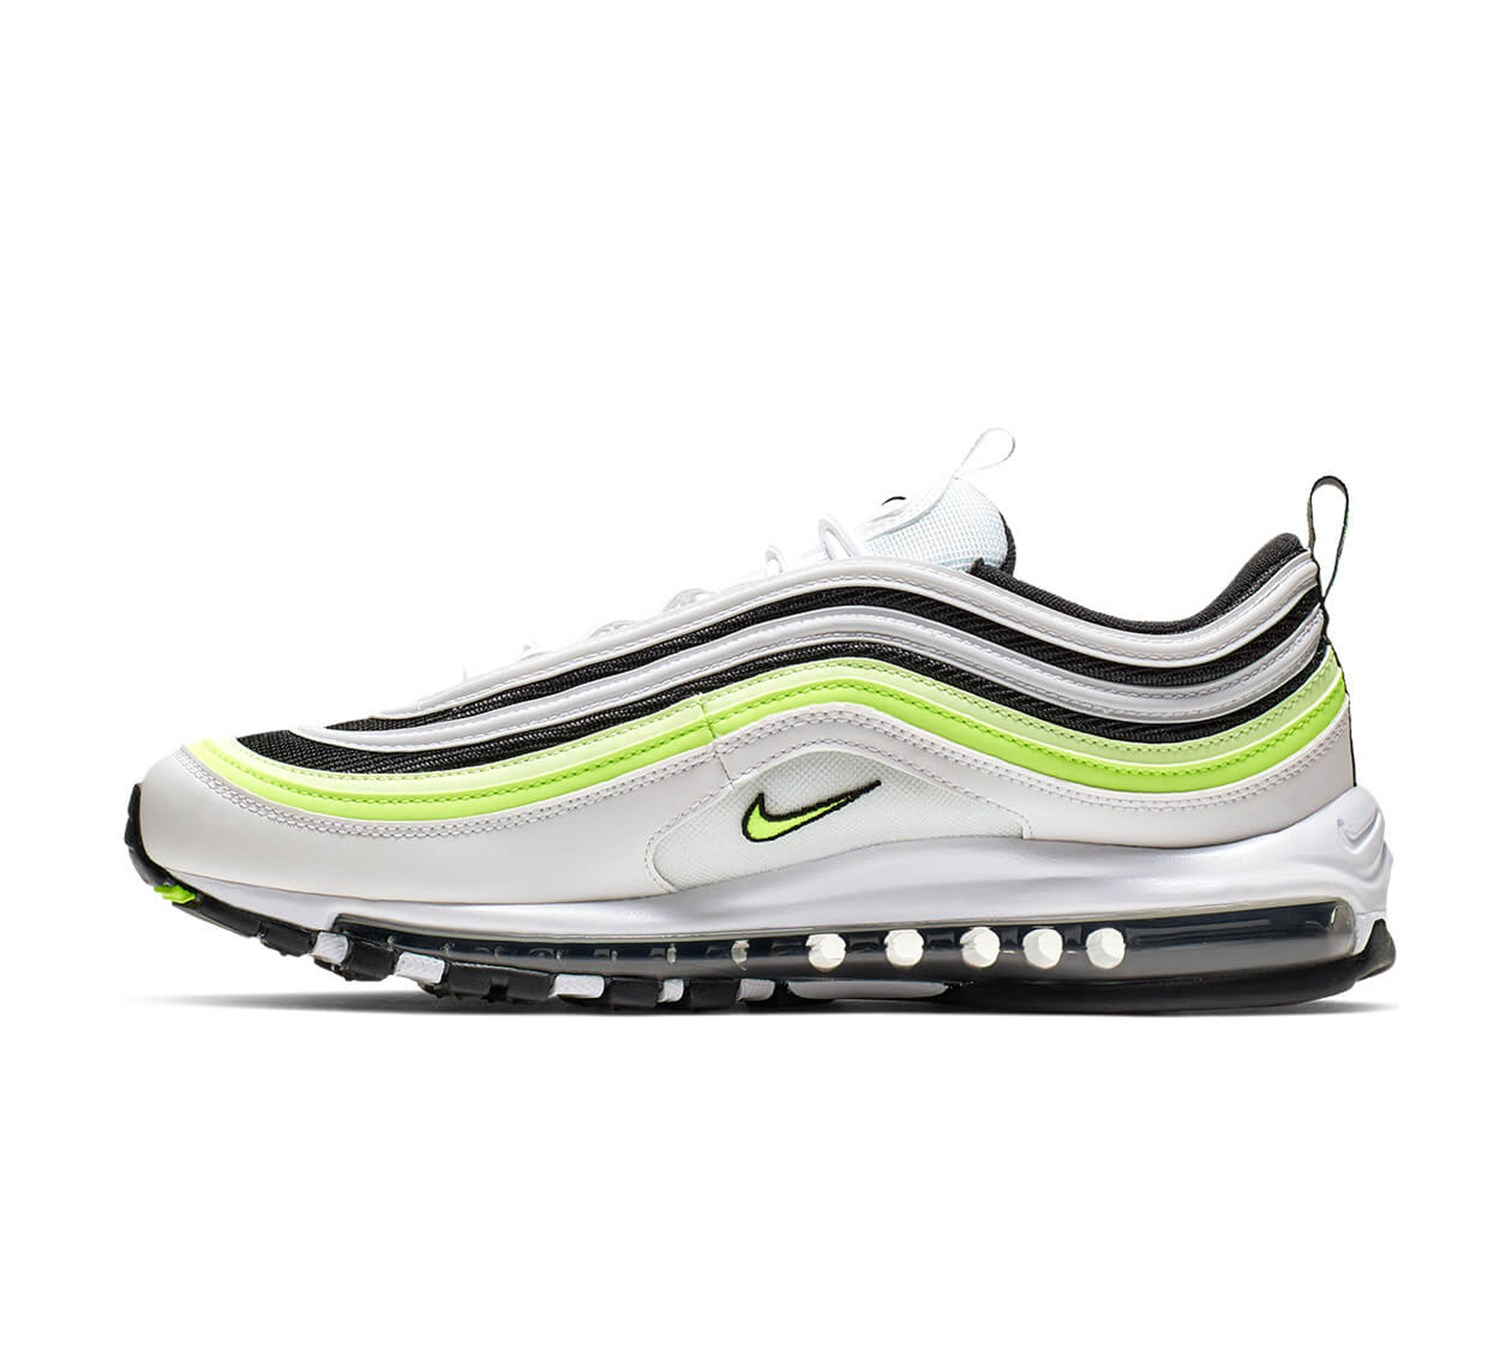 Wholesale Nike Shoes Australia,Nike Air Max 97 Og M White